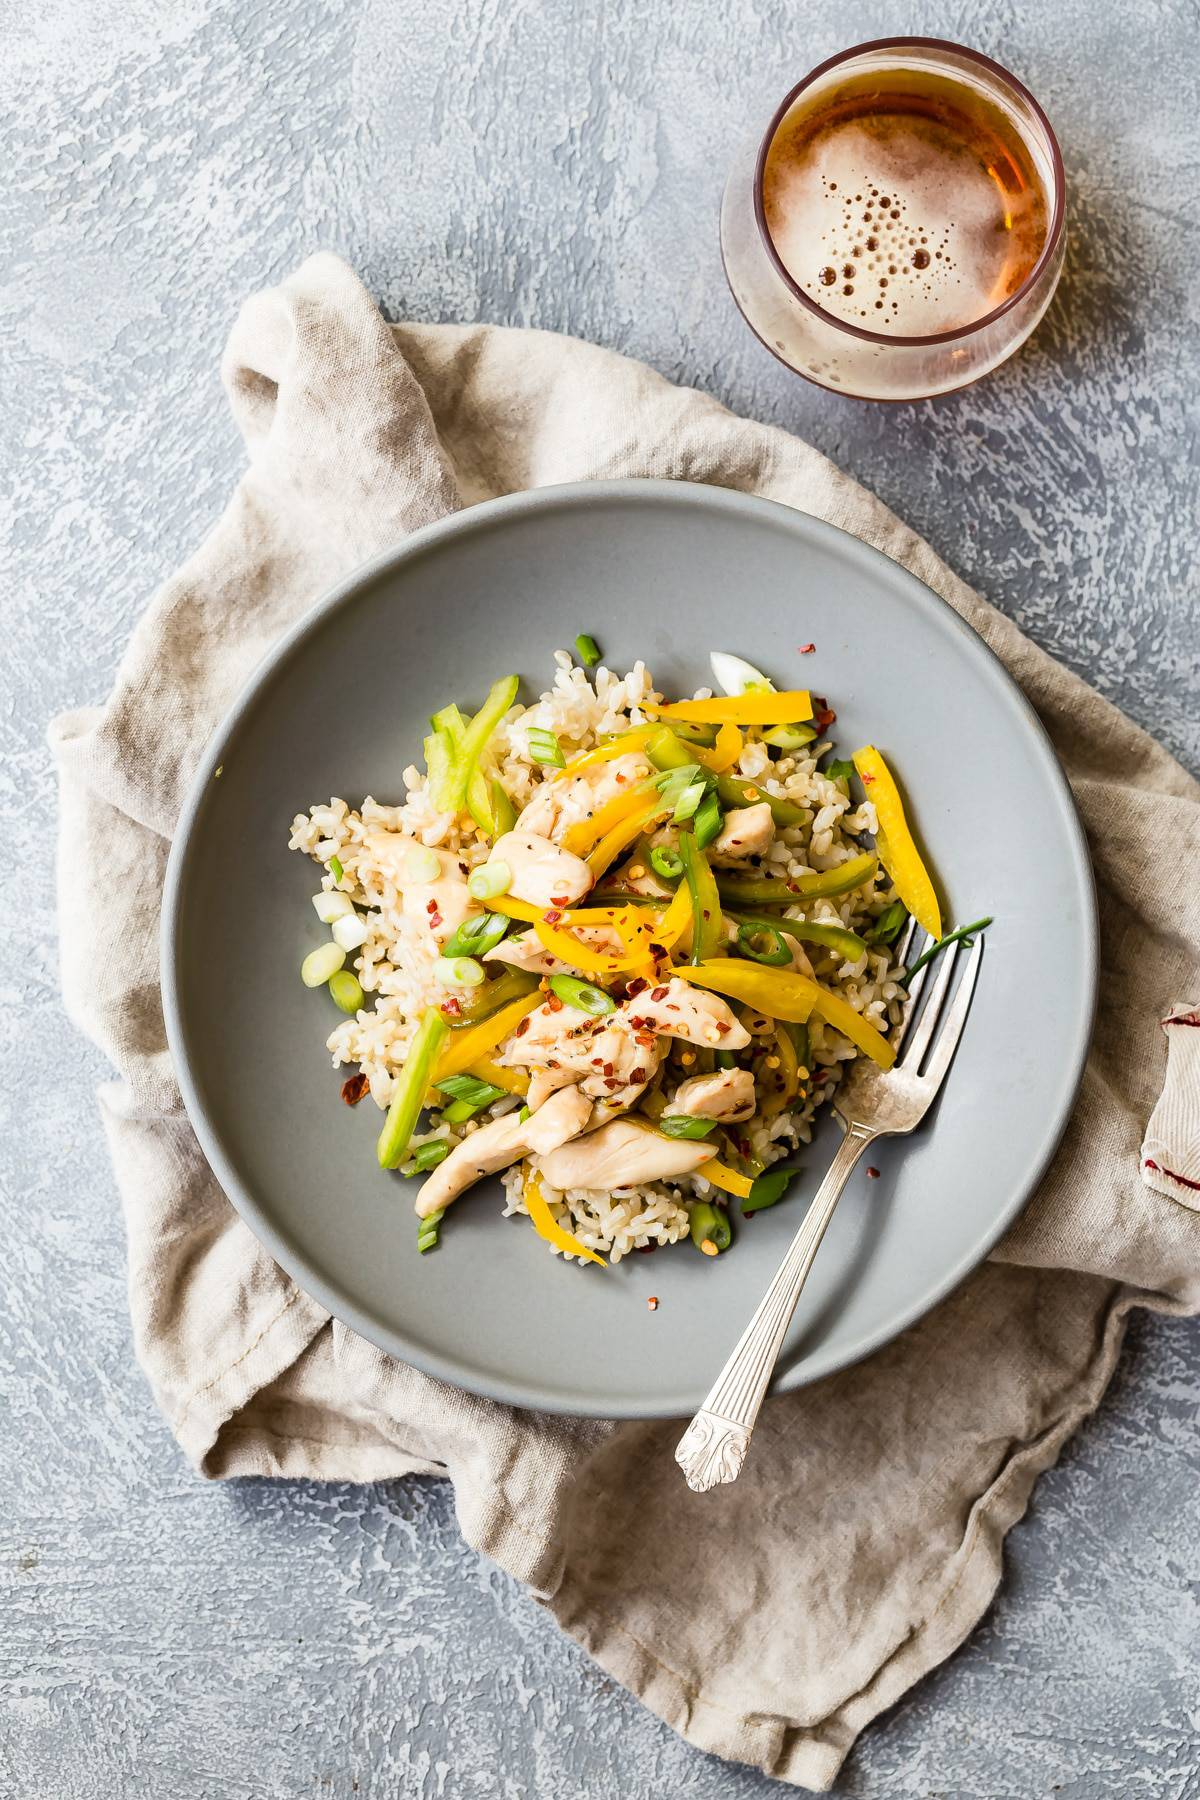 Sweet and sour chicken with brown rice